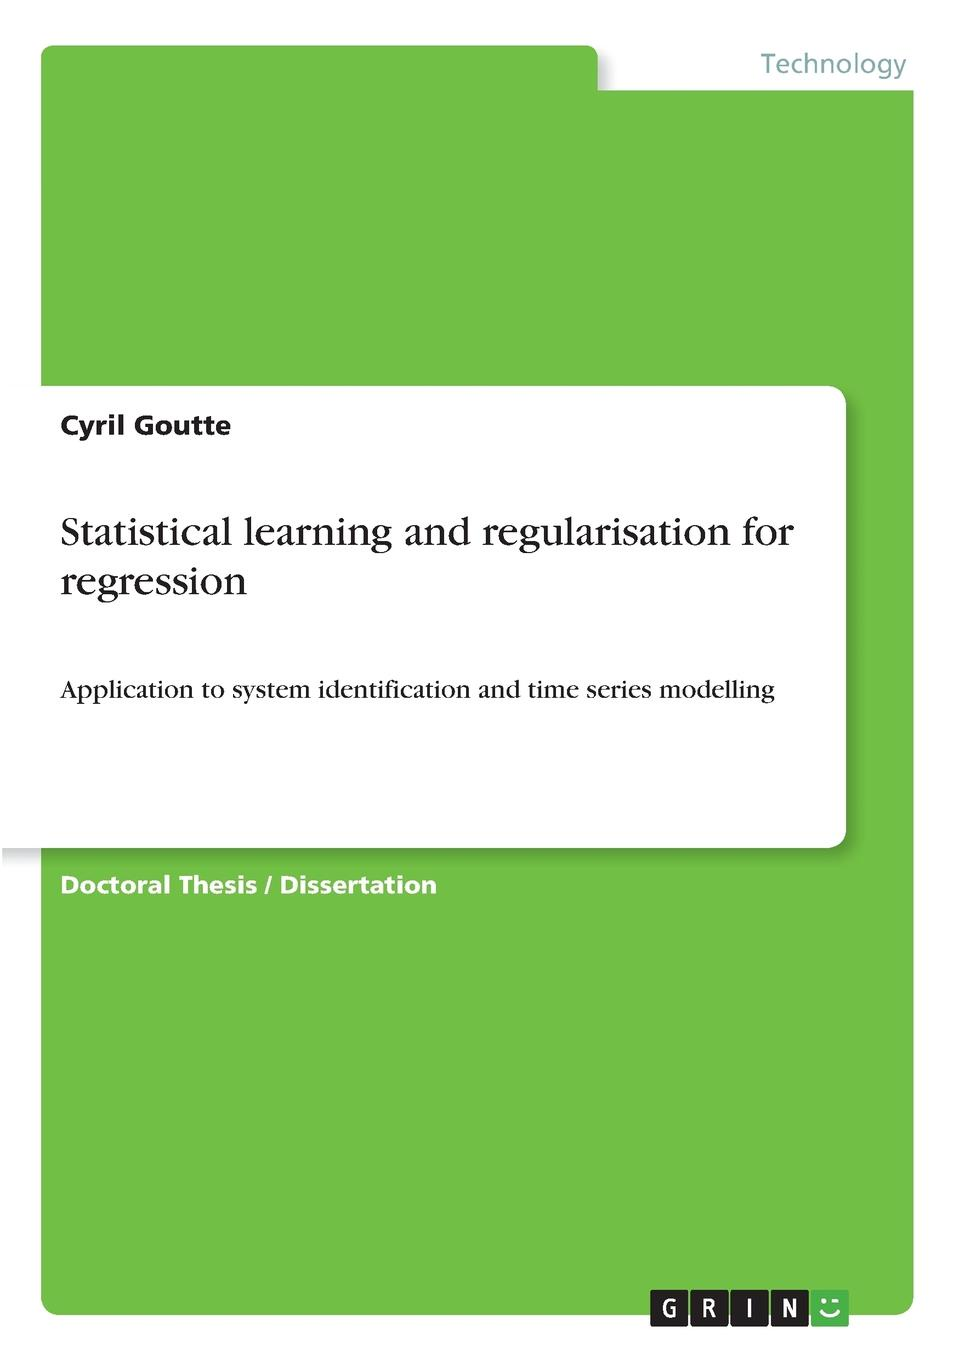 Cyril Goutte Statistical learning and regularisation for regression regression estimators – a comparative study 2e